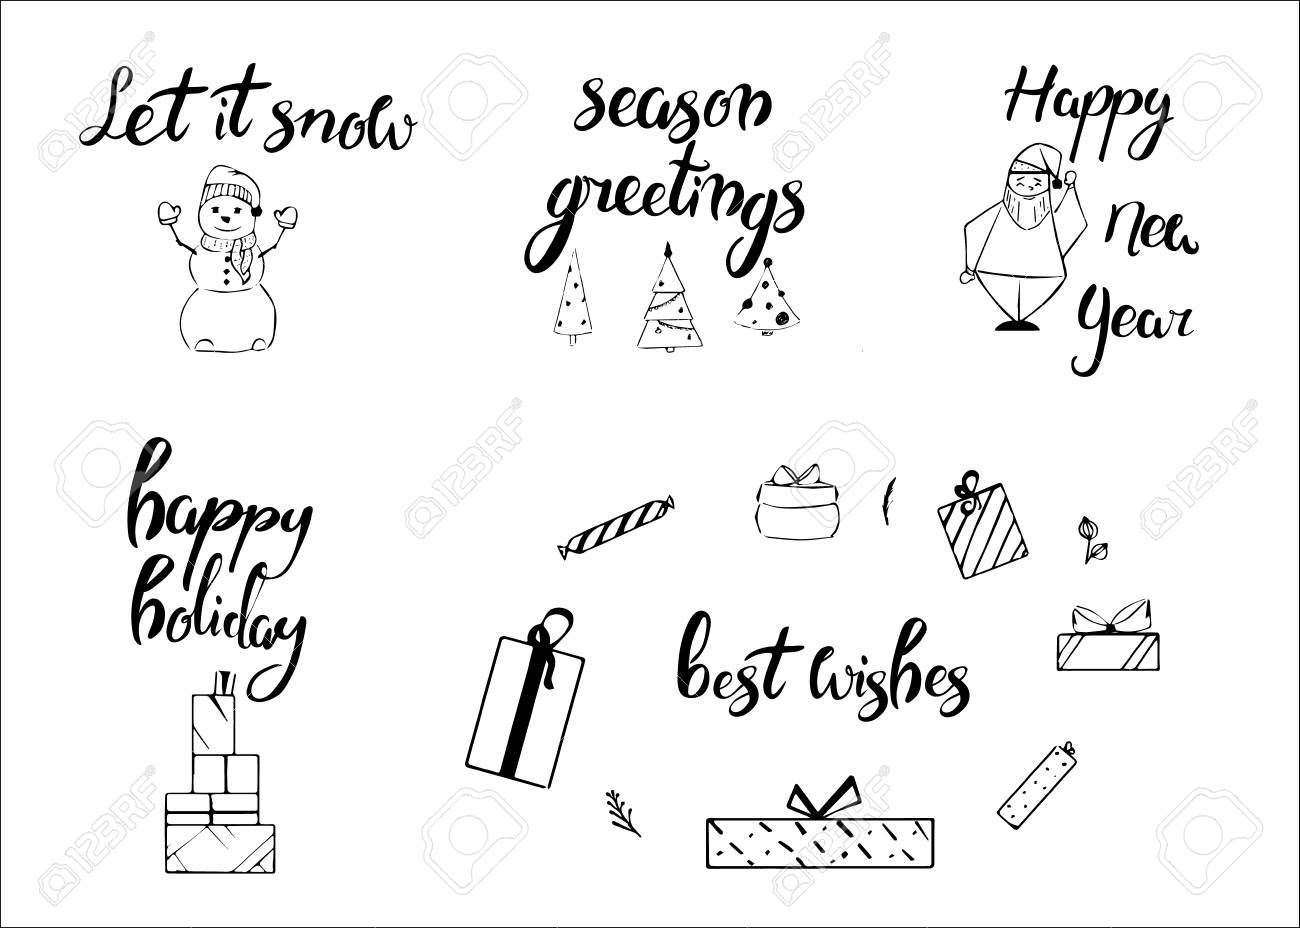 Merry christmas happy new year 2018 greeting card typography happy new year 2018 greeting card typography xmas set with hand m4hsunfo